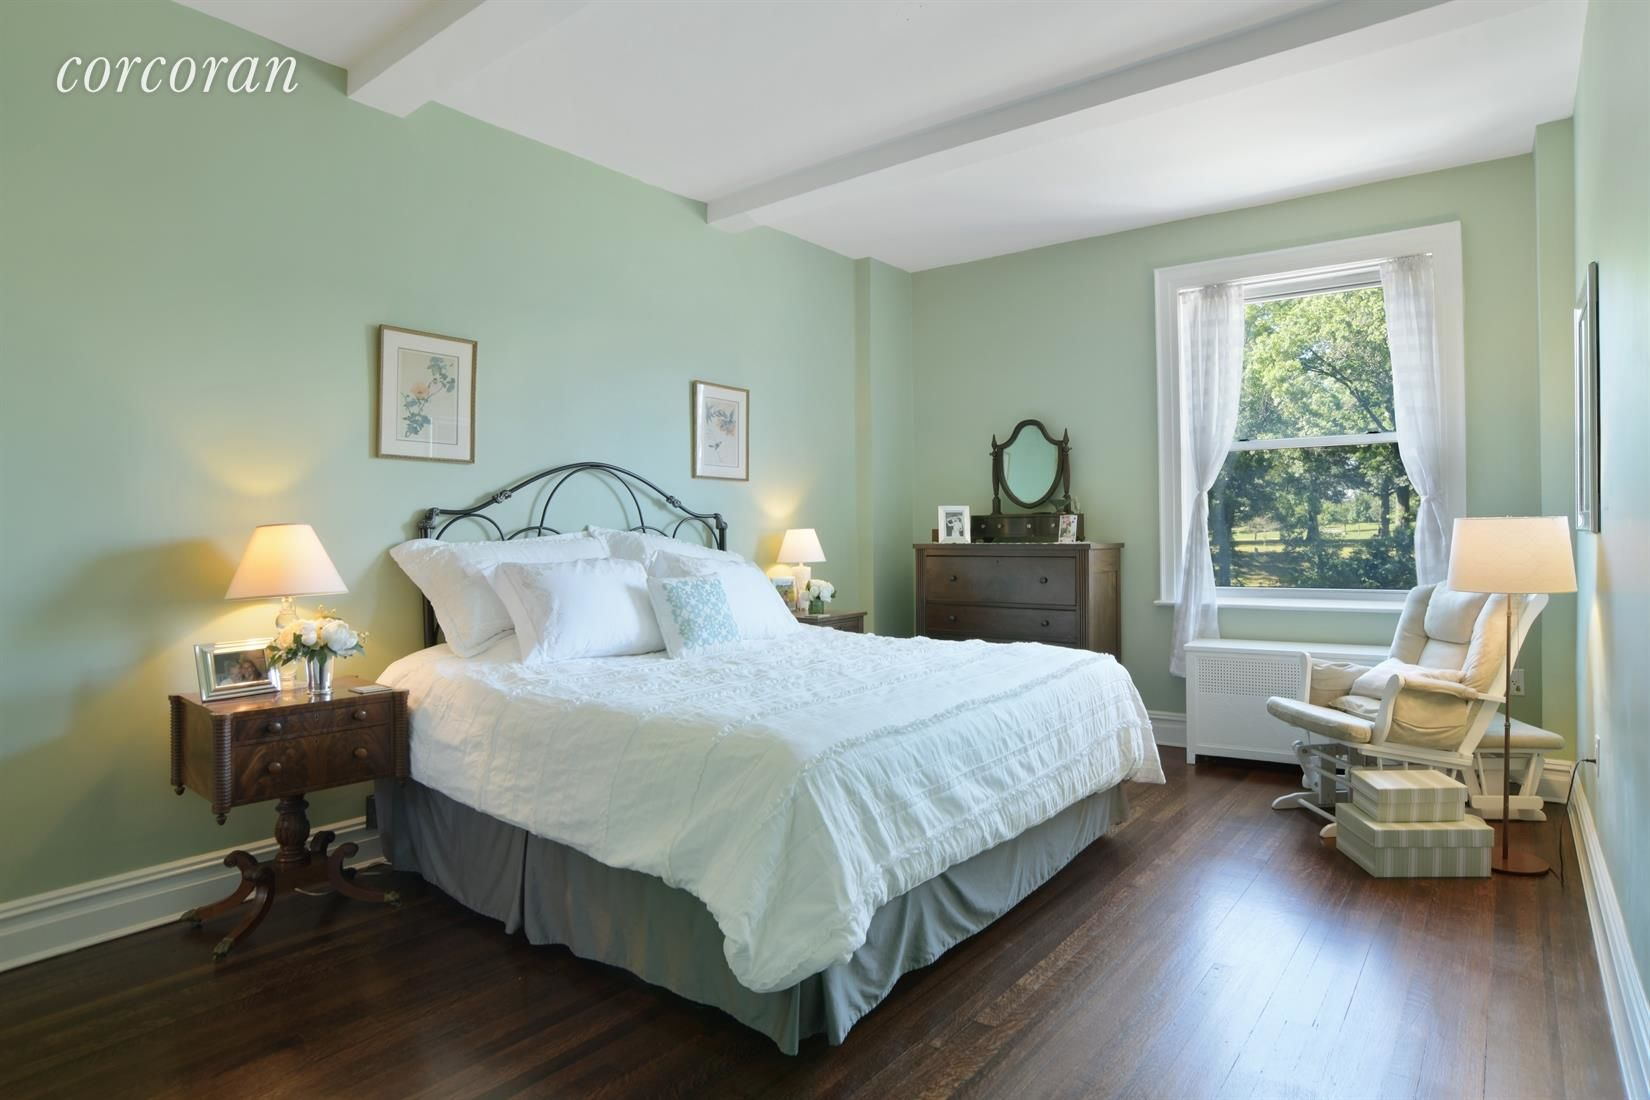 41 Eastern Pkwy, APT 4A Photo 6 - CORCORAN-5425191